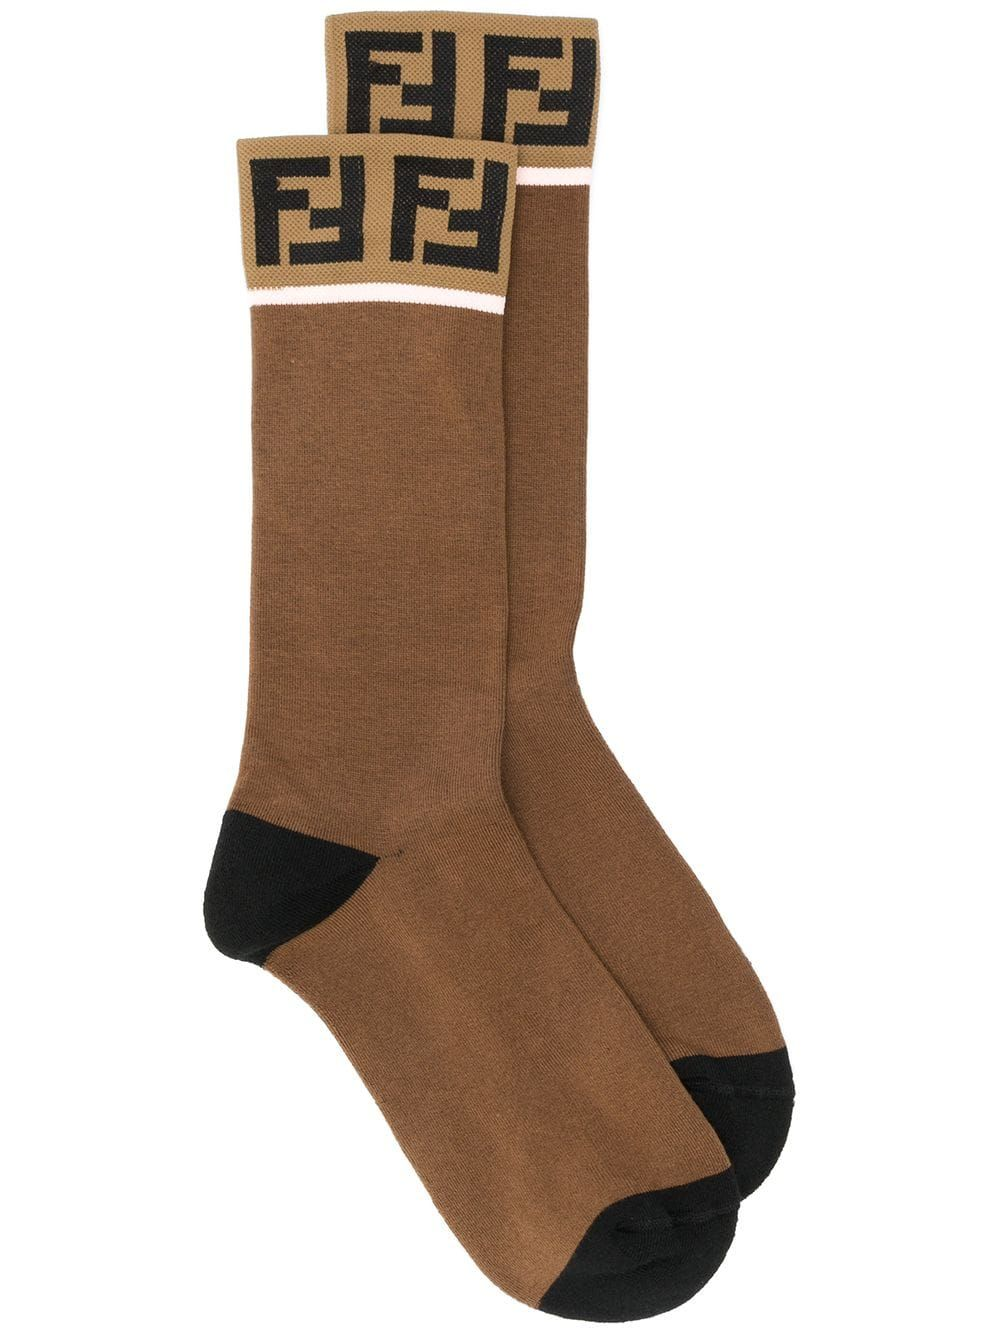 e7bcbc185465a fendi #socks #ff #logo #men #style #fashion #accessories #new www ...